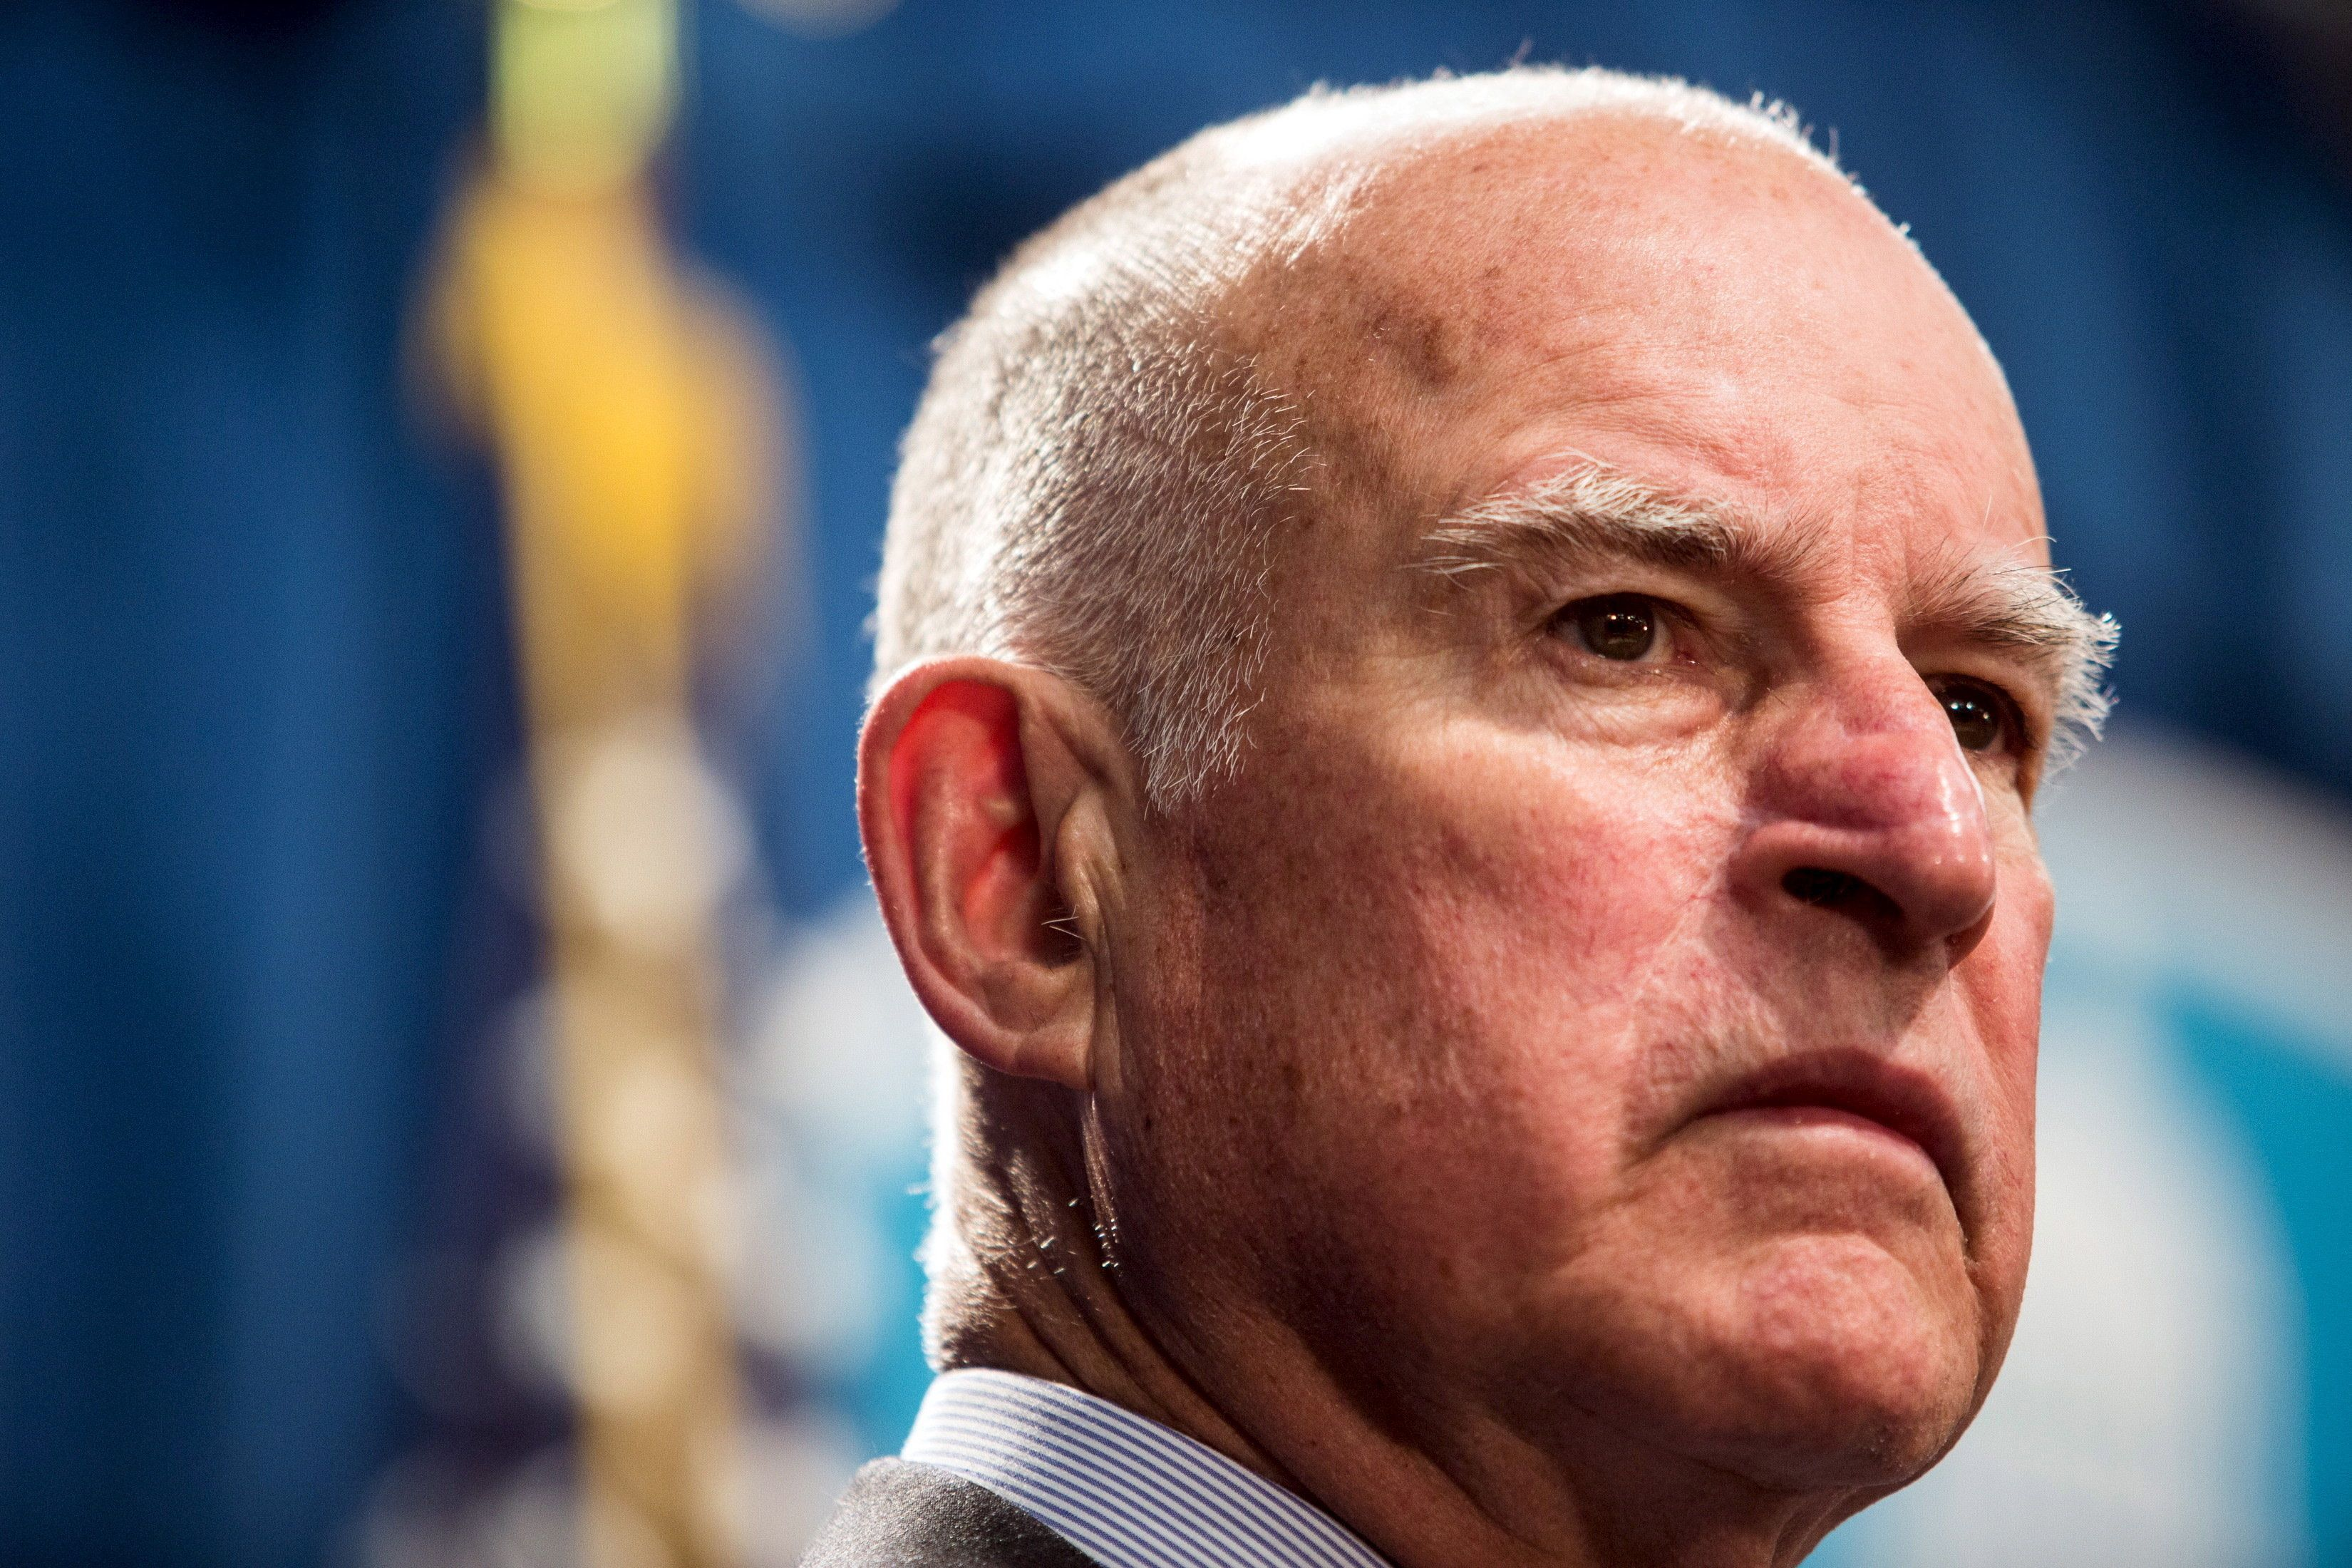 California Governor Jerry Brown looks on during a news conference at the State Capitol in Sacramento, California in this file photo taken March 19, 2015. Brown on April 4, 2016 was expected to sign into a law a plan to raise the minimum wage from $10 to $15 an hour by the year 2023, making the nation's most-populous state the first to boost pay to that level for the working poor.  REUTERS/Max Whittaker/Files